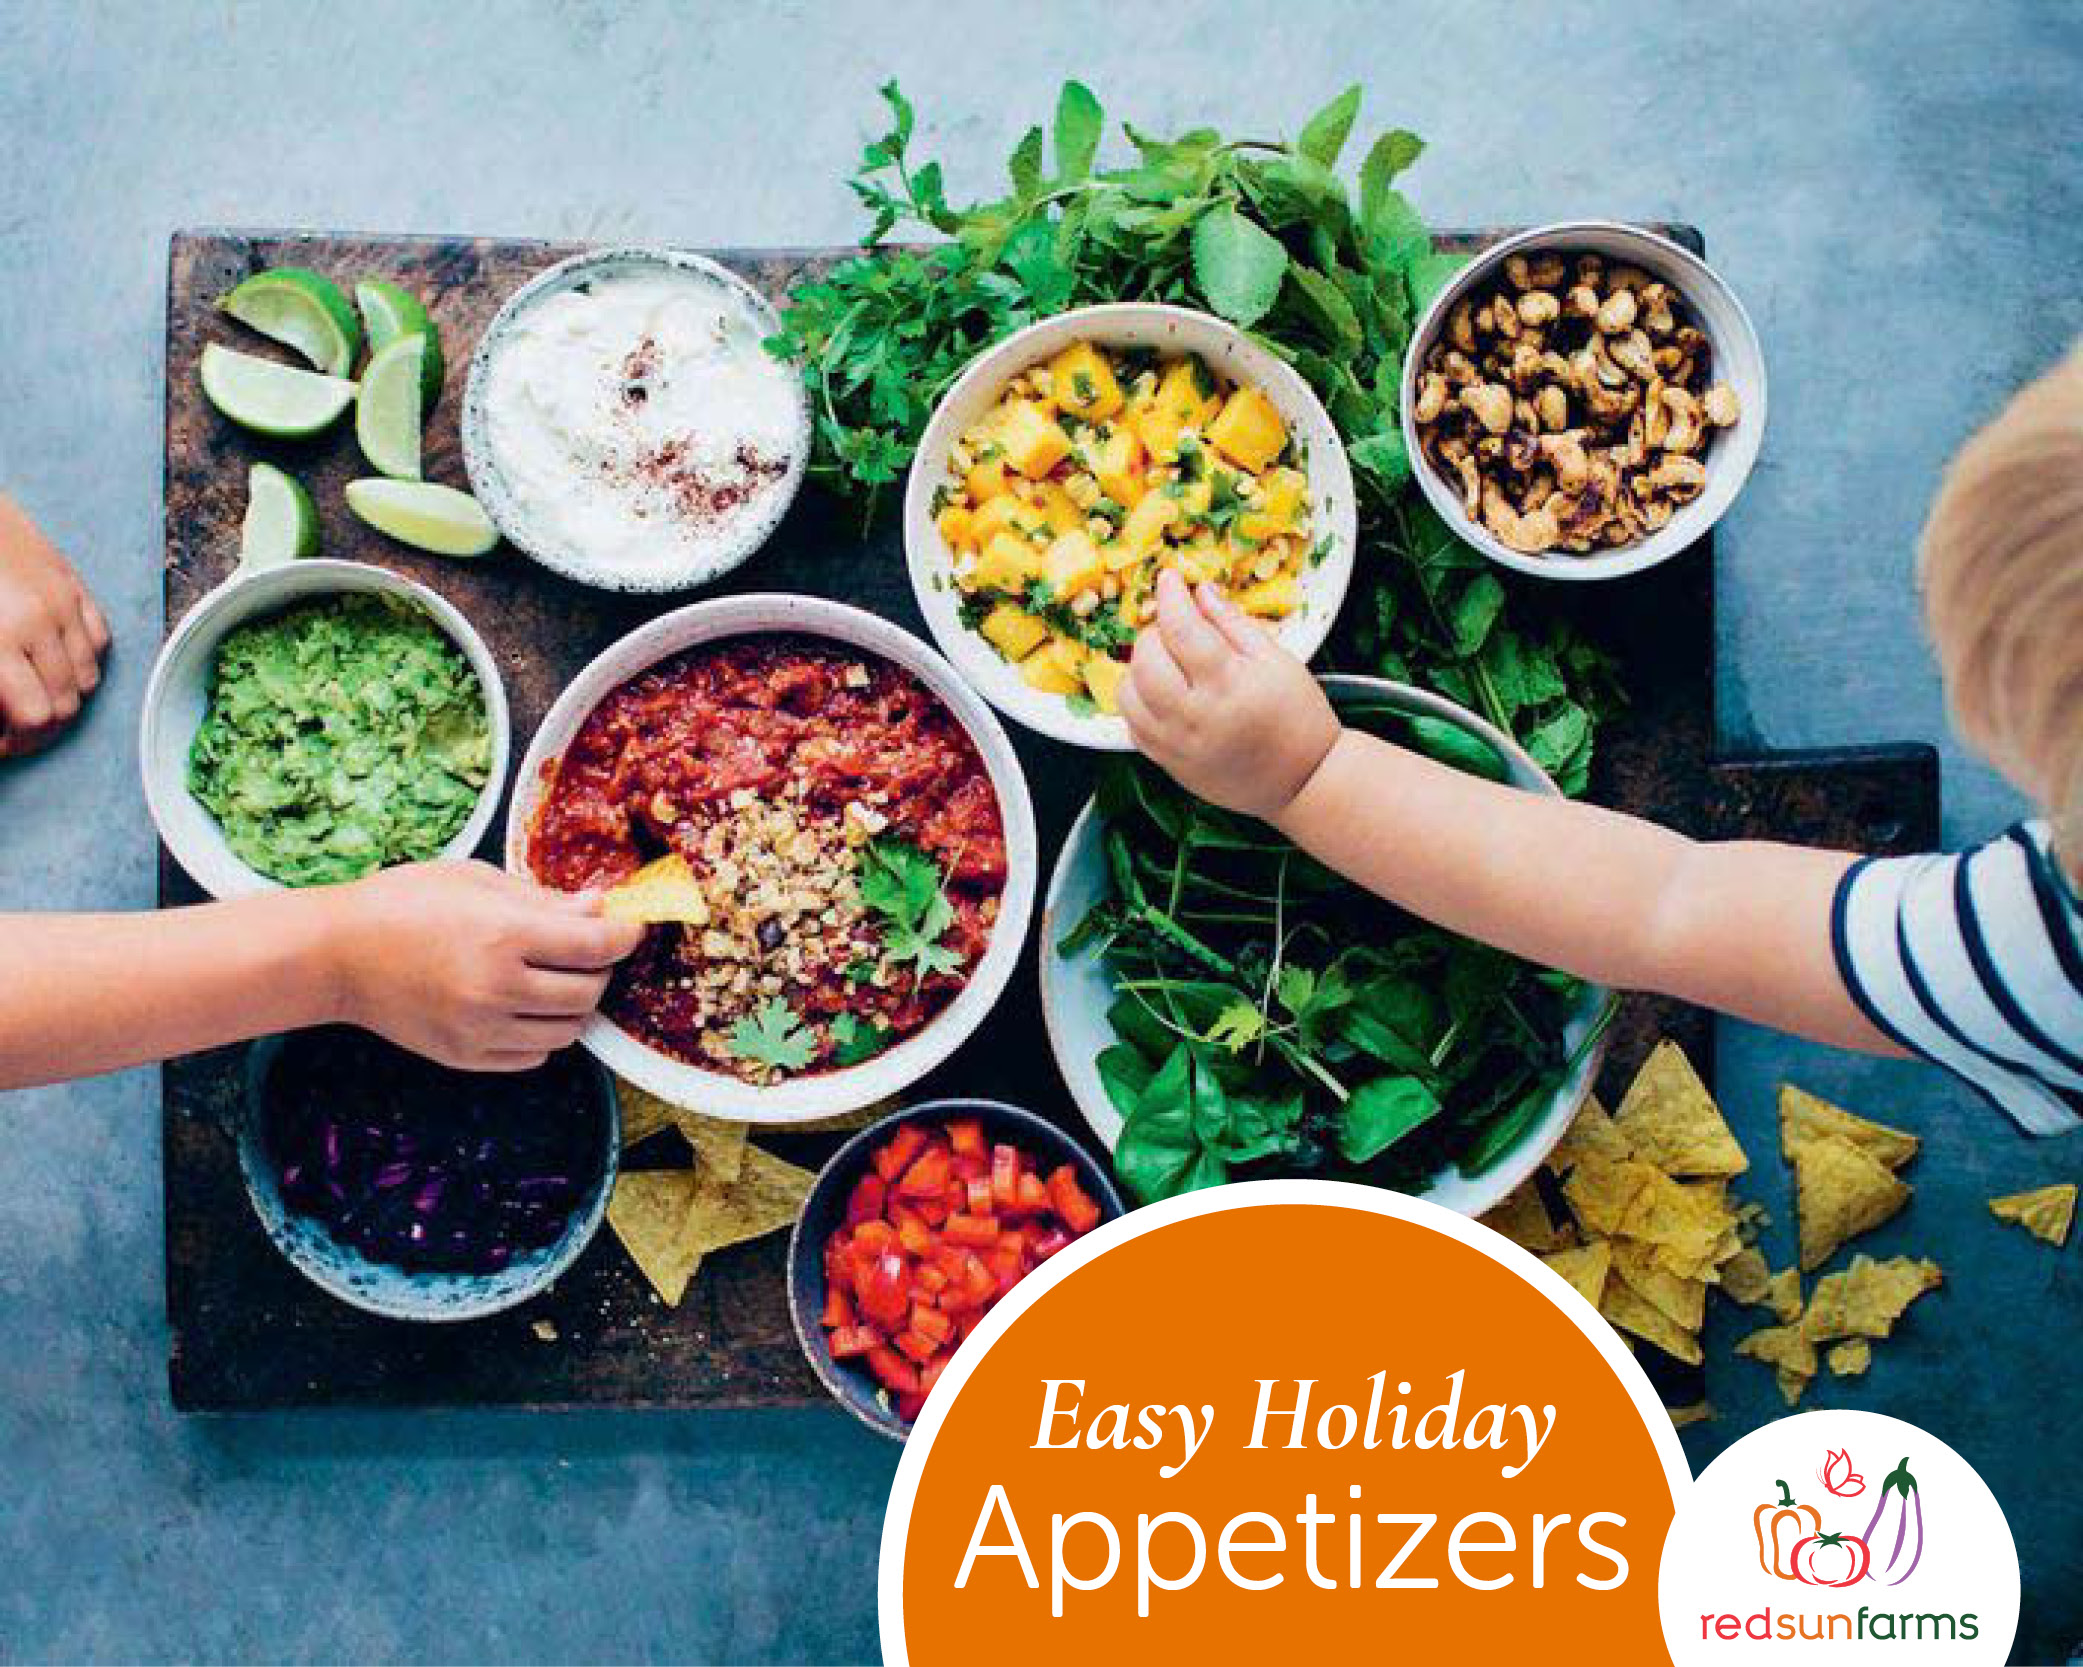 Easy Holiday Appetizers